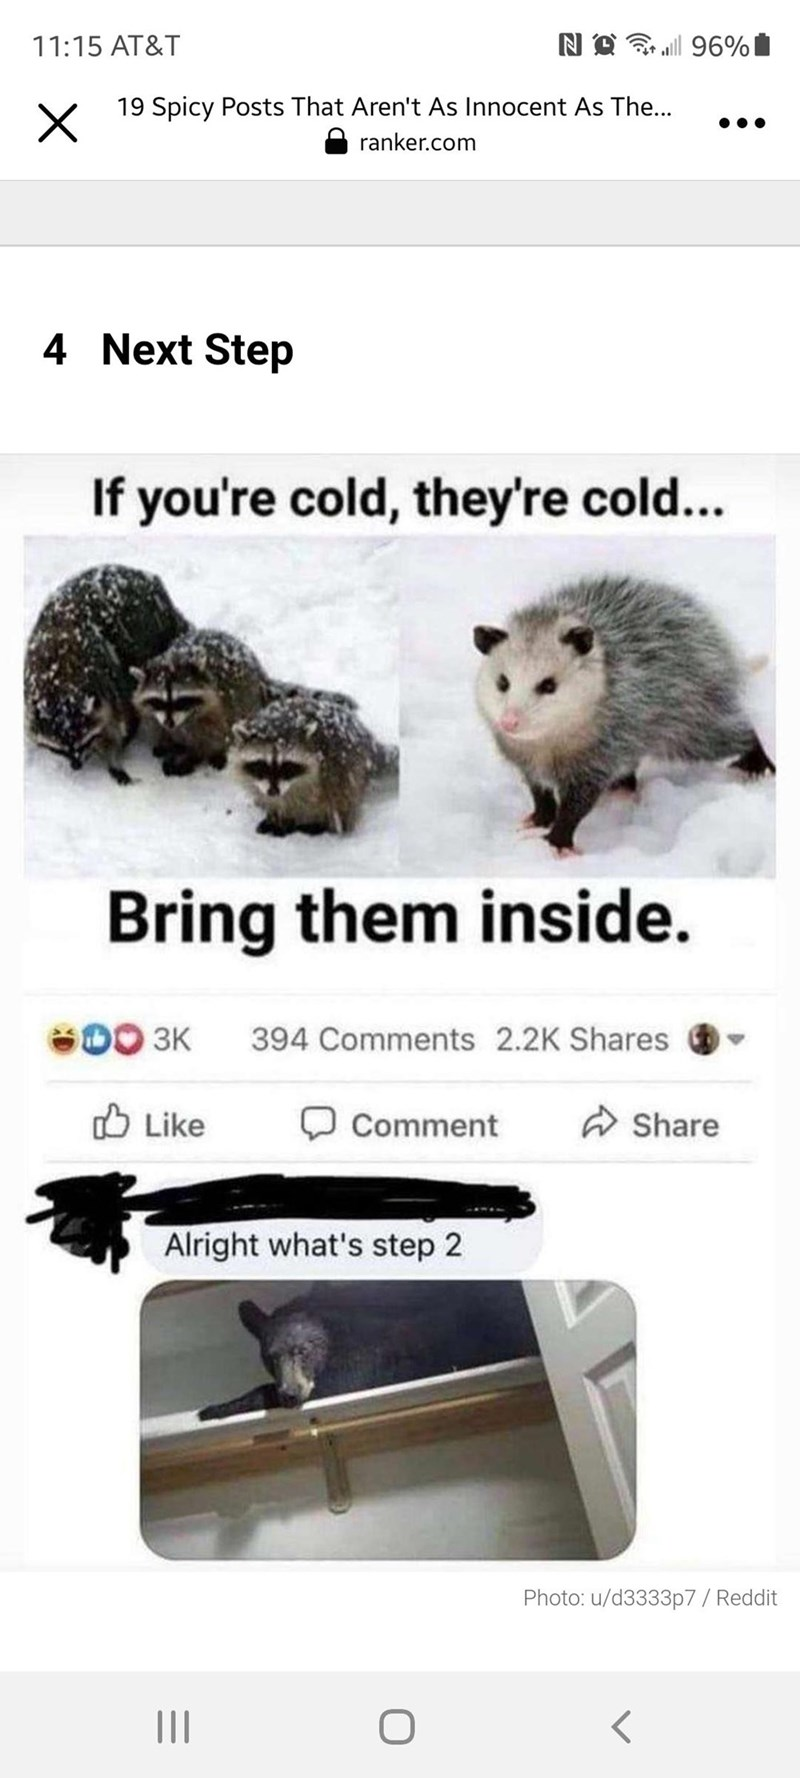 Vertebrate - 11:15 AT&T NAG 96% 19 Spicy Posts That Aren't As Innocent As The... ranker.com 4 Next Step If you're cold, they're cold... Bring them inside. S00 3K 394 Comments 2.2K Shares O Like Comment W Share Alright what's step 2 Photo: u/d3333p7/ Reddit II